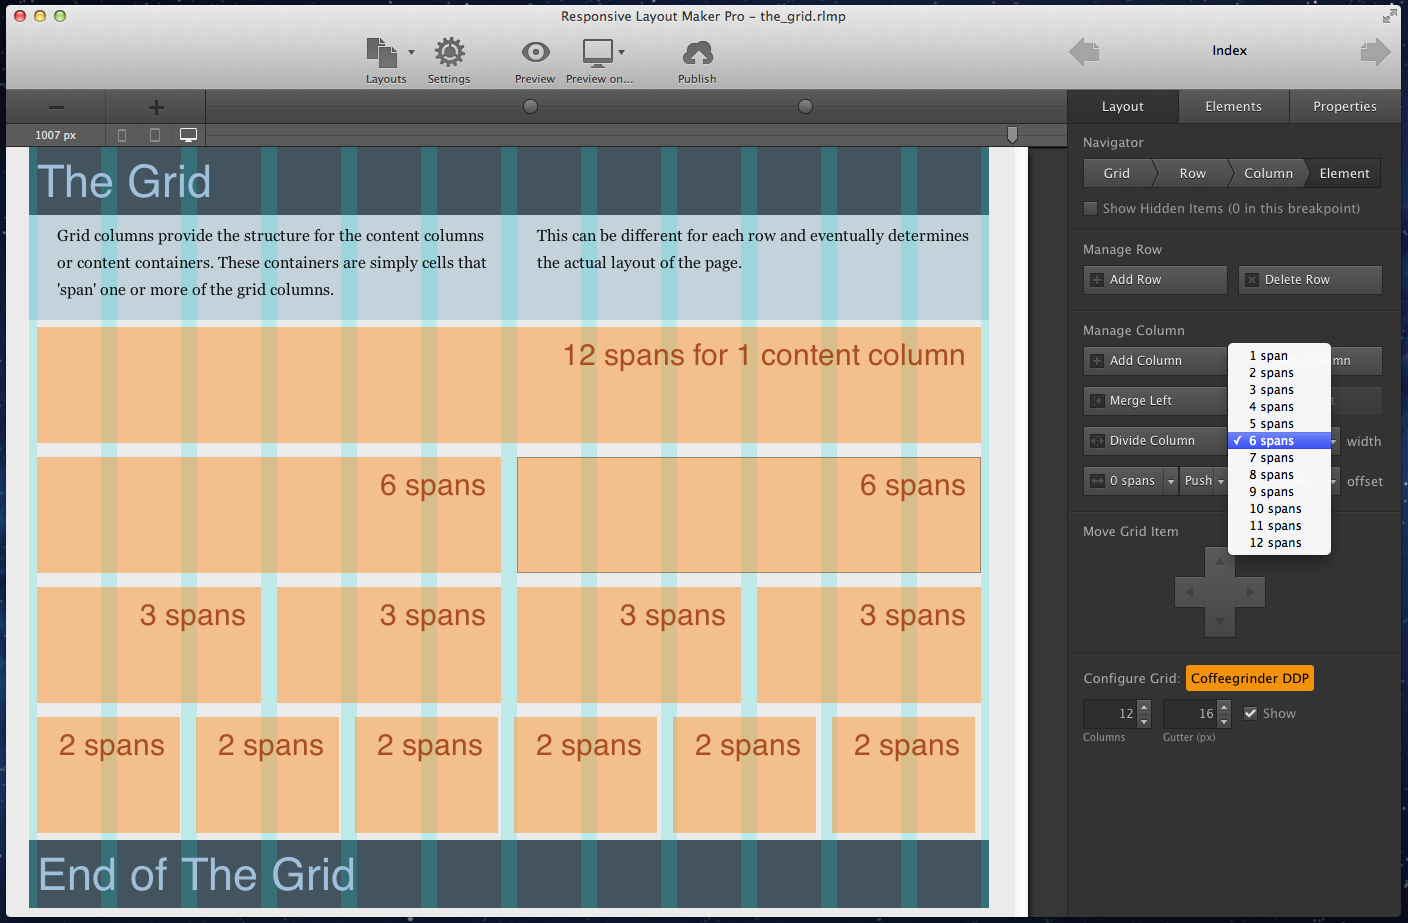 Responsive Layout Maker uses a grid system